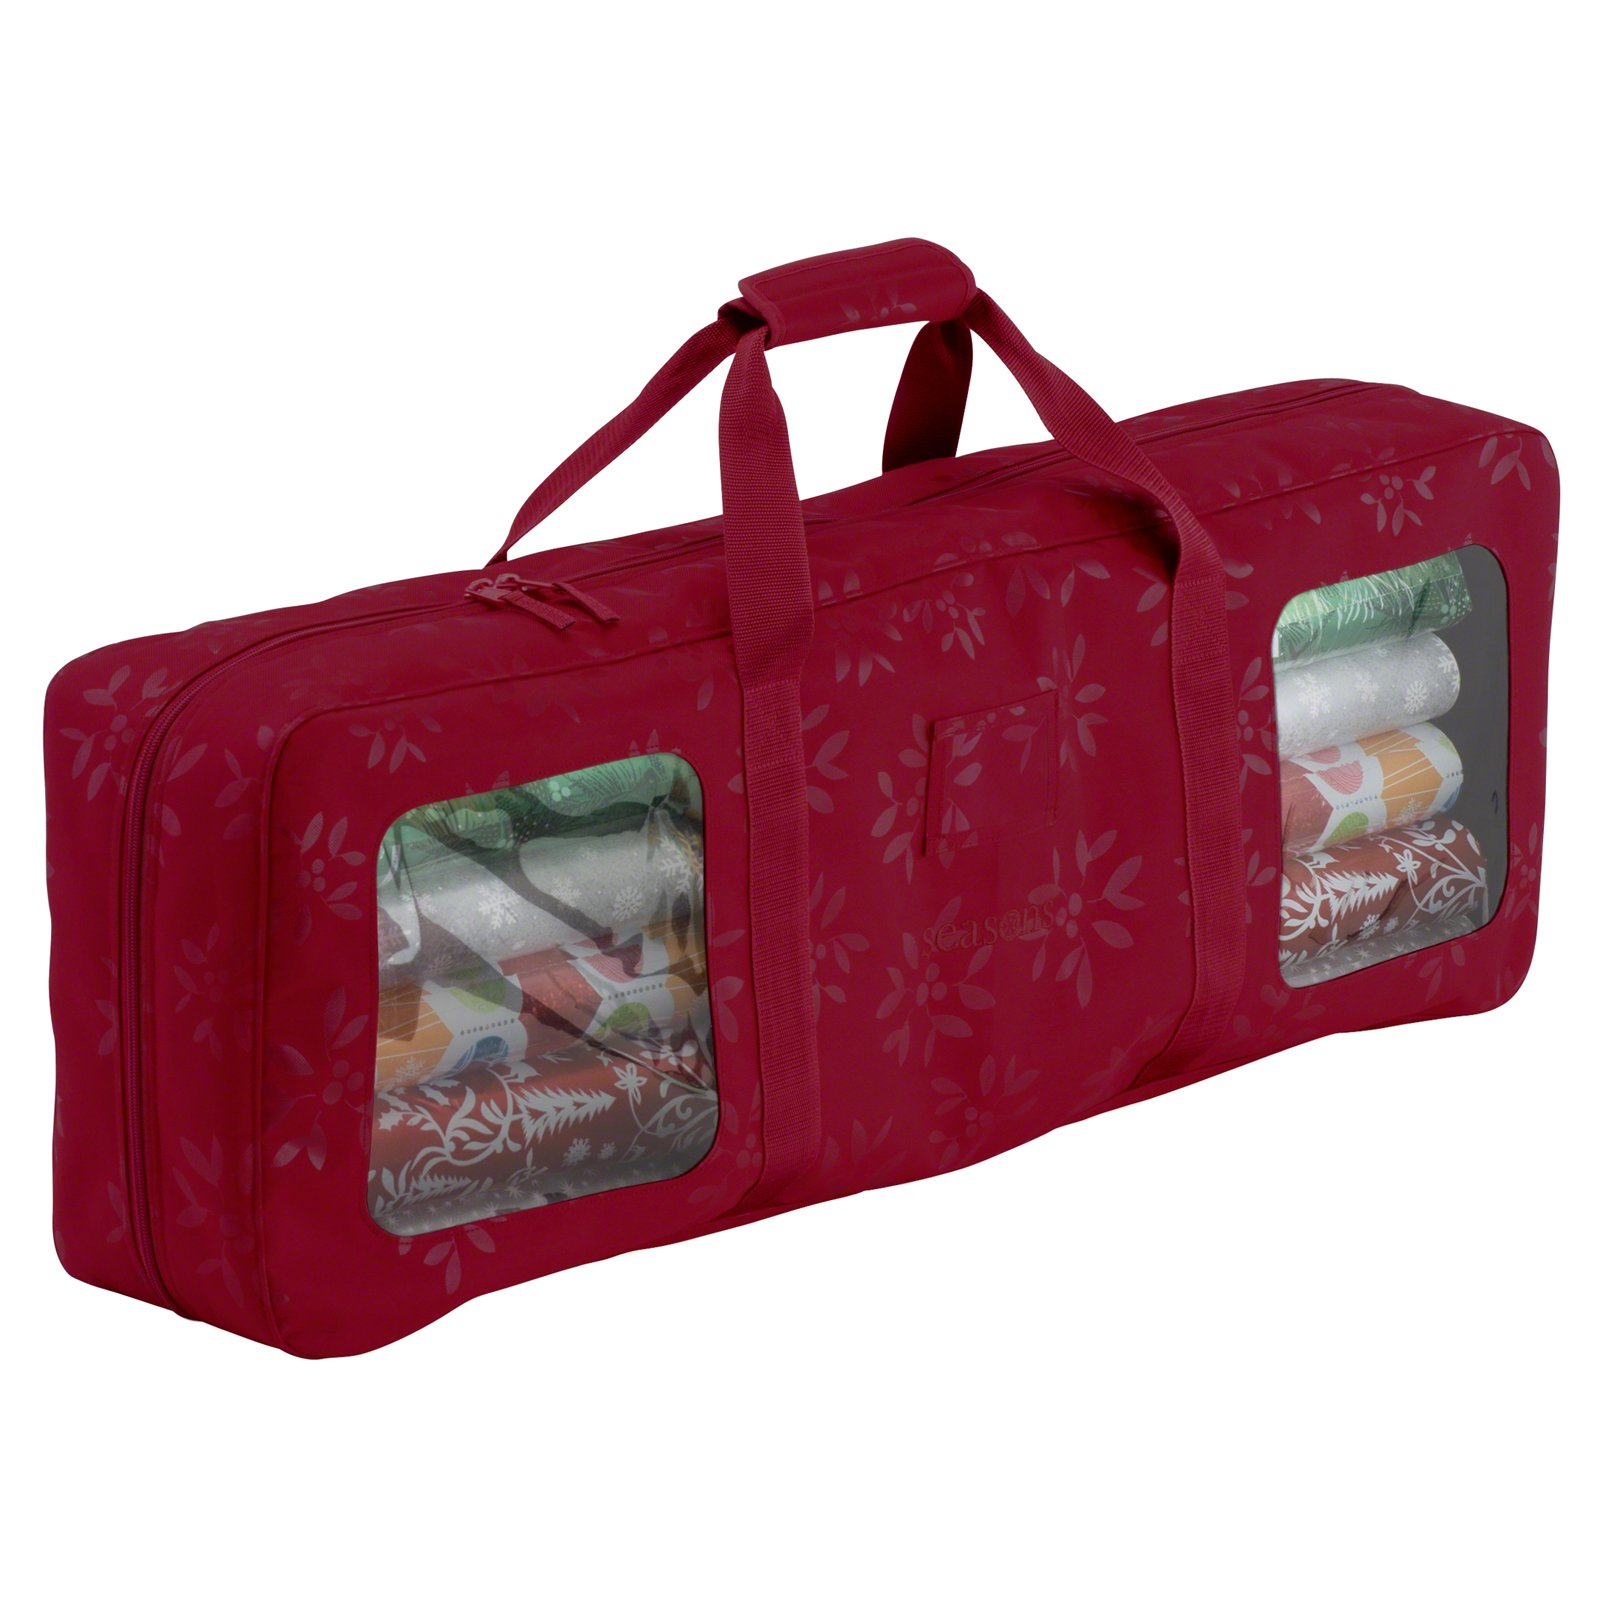 Classic Accessories Wrapping Supplies Organizer and Storage Duffel